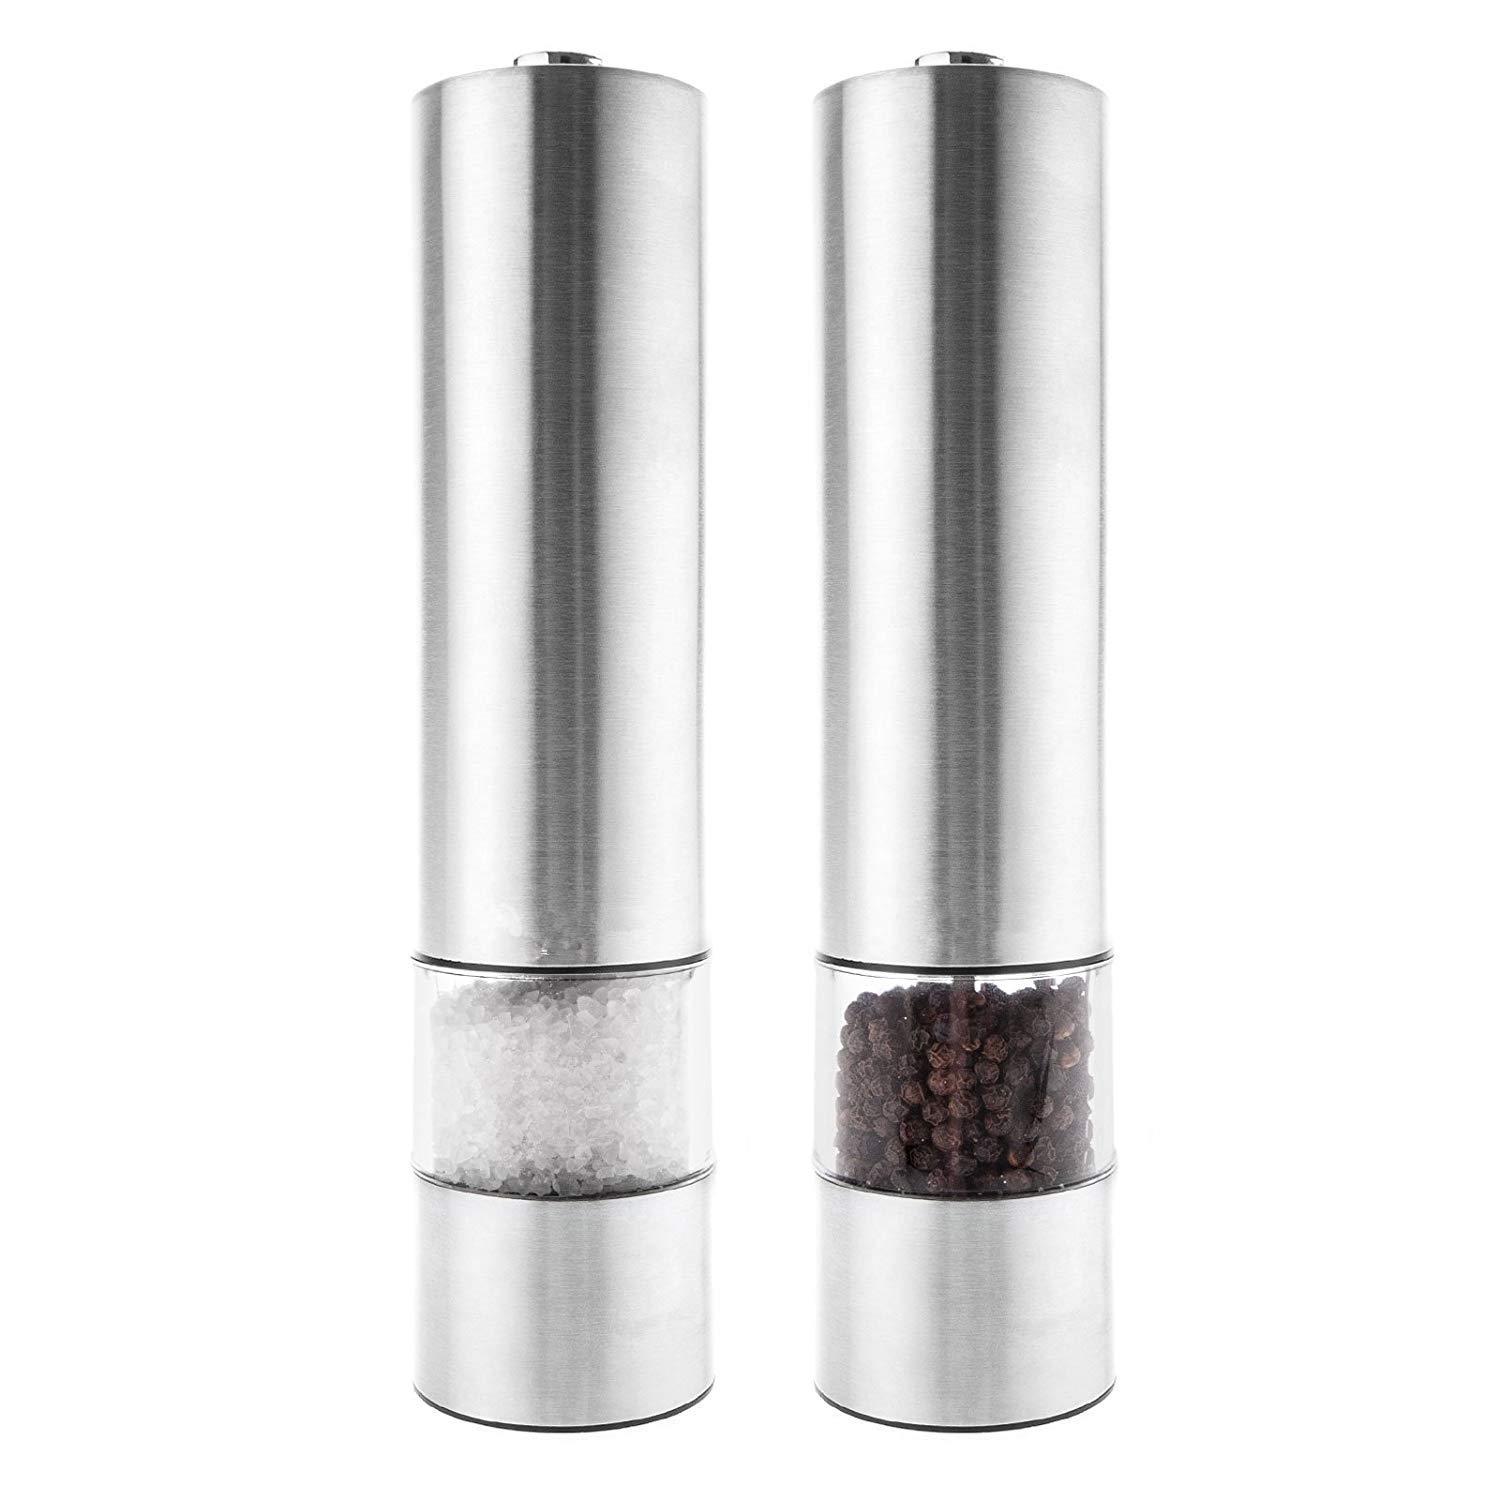 Electric Salt and Pepper Mill Grinders Set - Illuminated Stainless Steel Mills with Large Capacity Grinder Pots & One Touch Operation Adjustable Grinder Zhongqiao